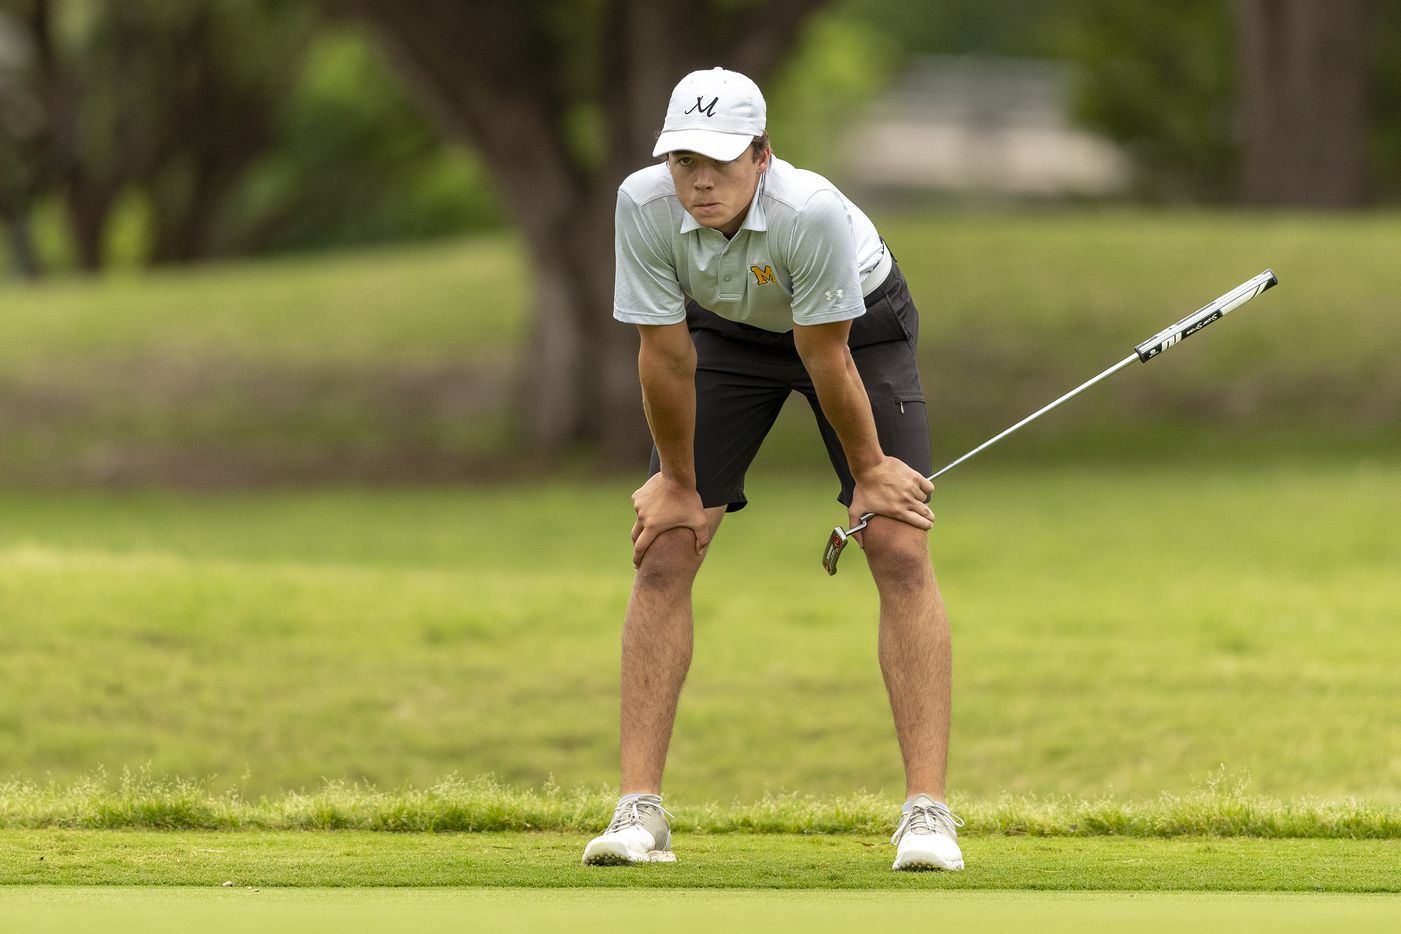 MansfieldÕs Ryan Hailey studies his shot on the 2nd green during the final round of the UIL Class 6A boys golf tournament in Georgetown, Tuesday, May 18, 2021. (Stephen Spillman/Special Contributor)